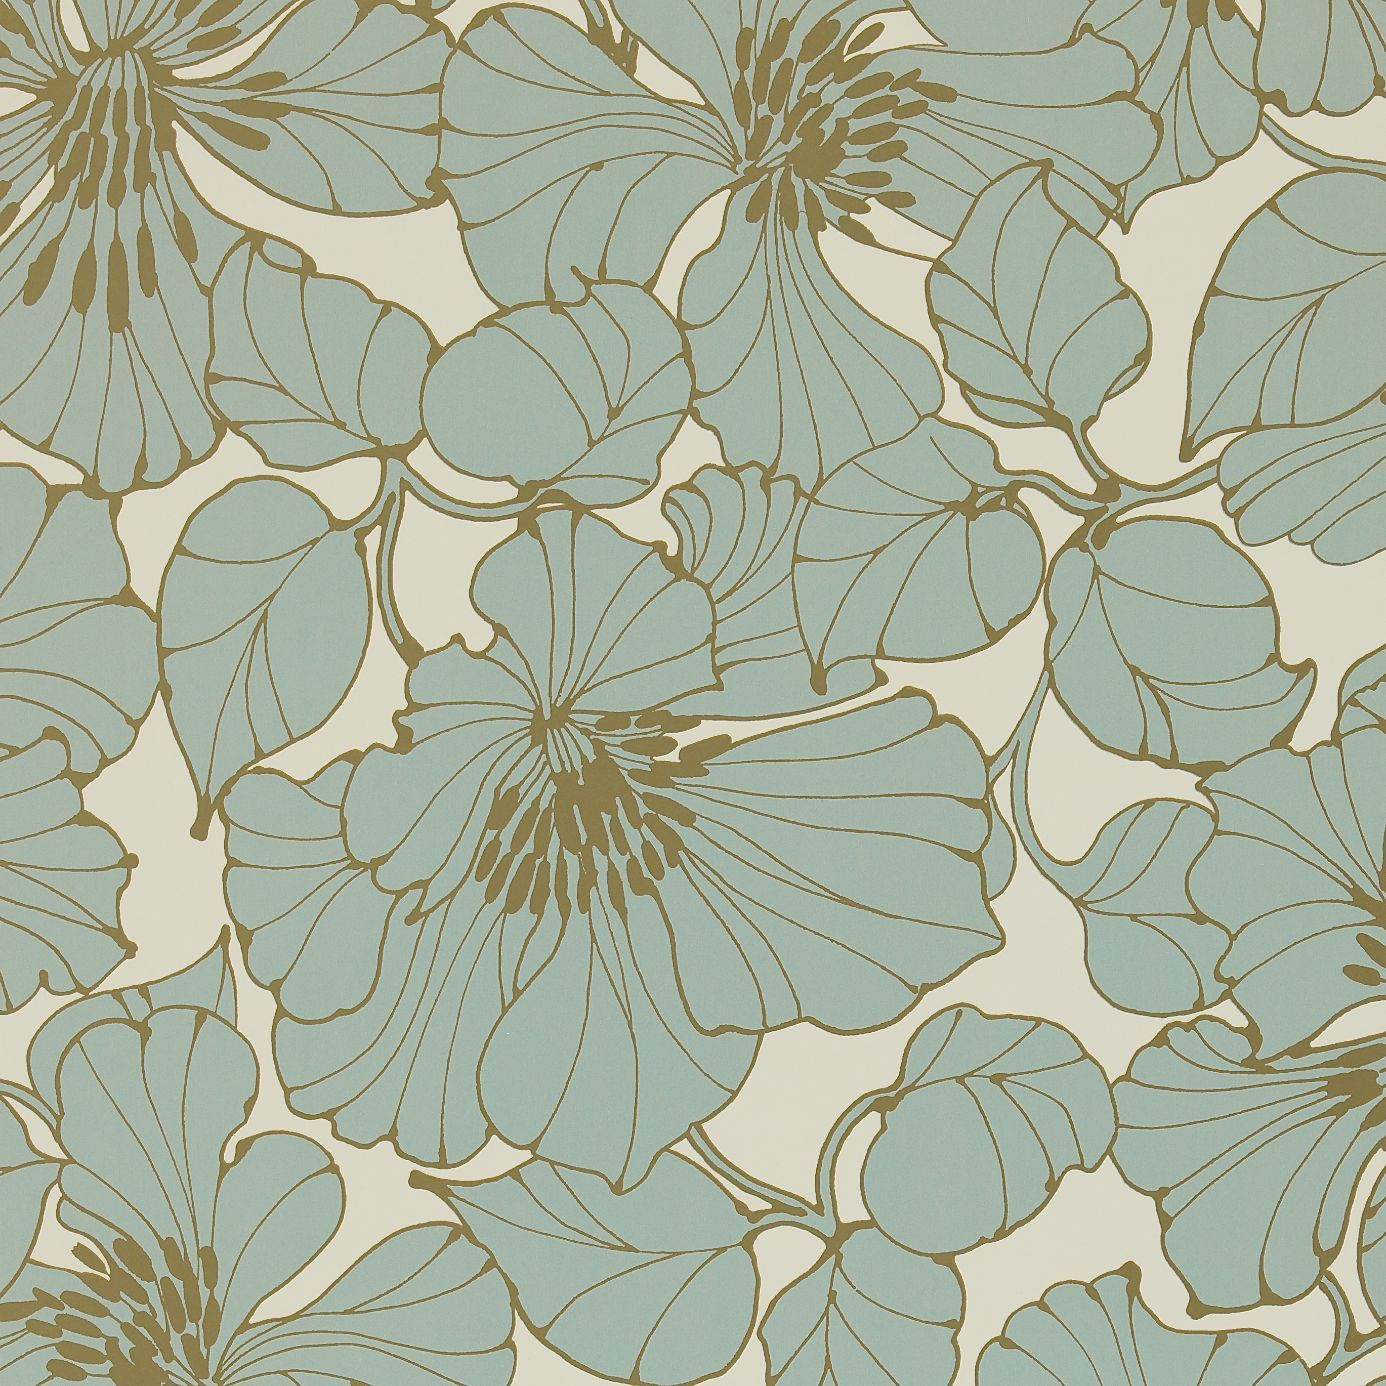 Harlequin Details of Fabrics and Wallcovering designs